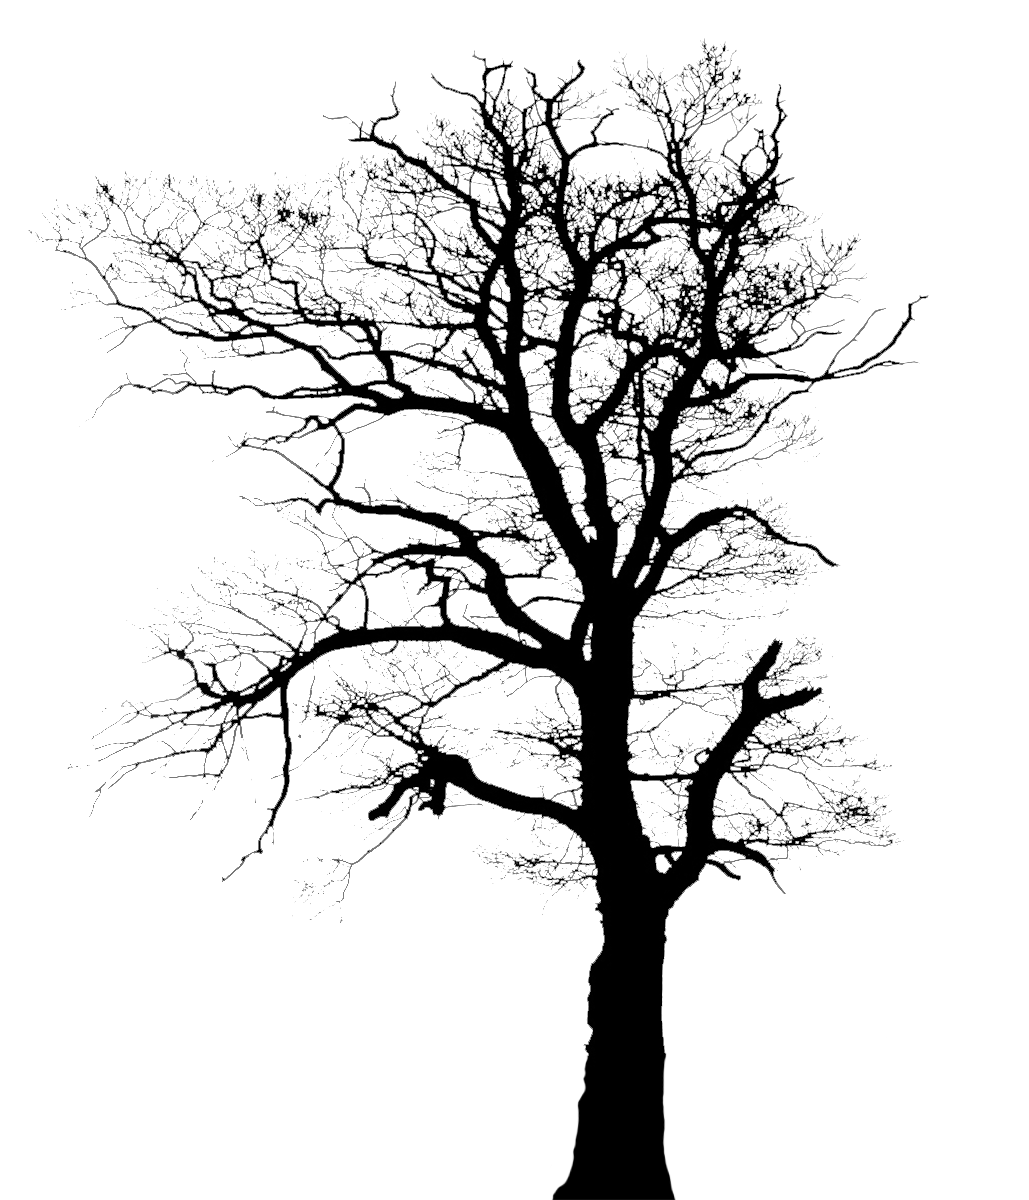 tree silhouette without leaves